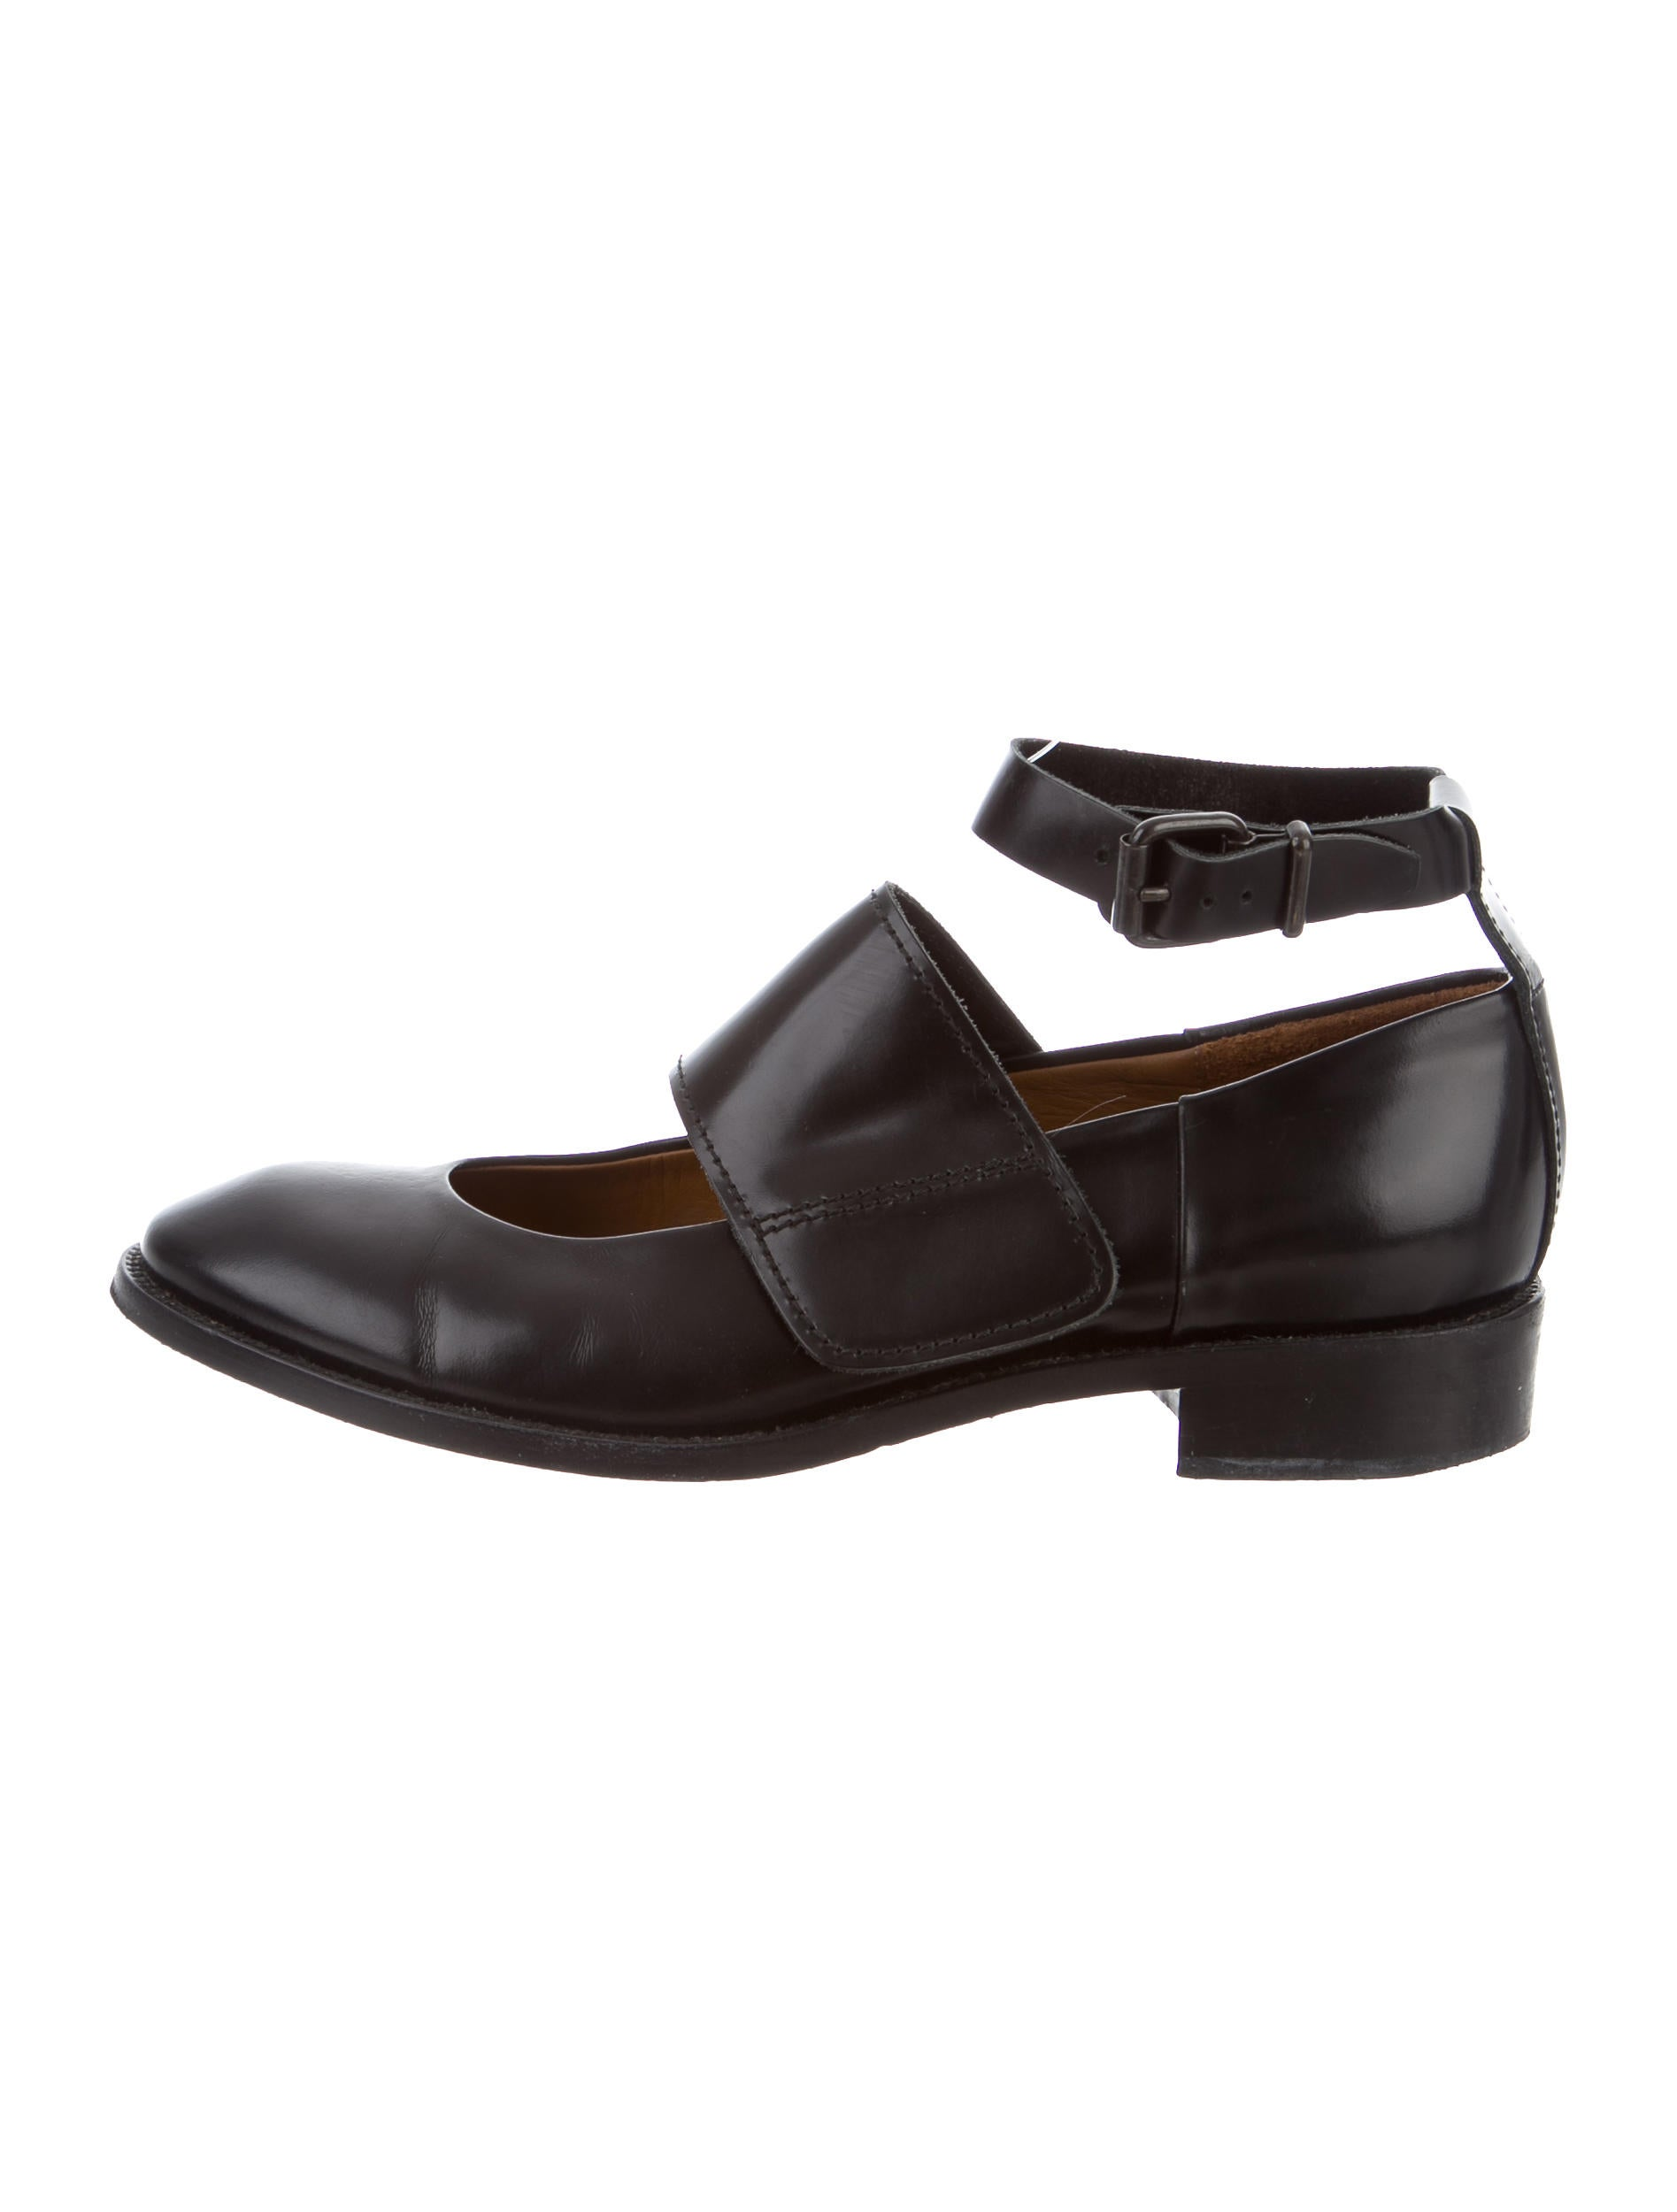 Acne Leather Mary Jane Flats Shoes Acn29098 The Realreal